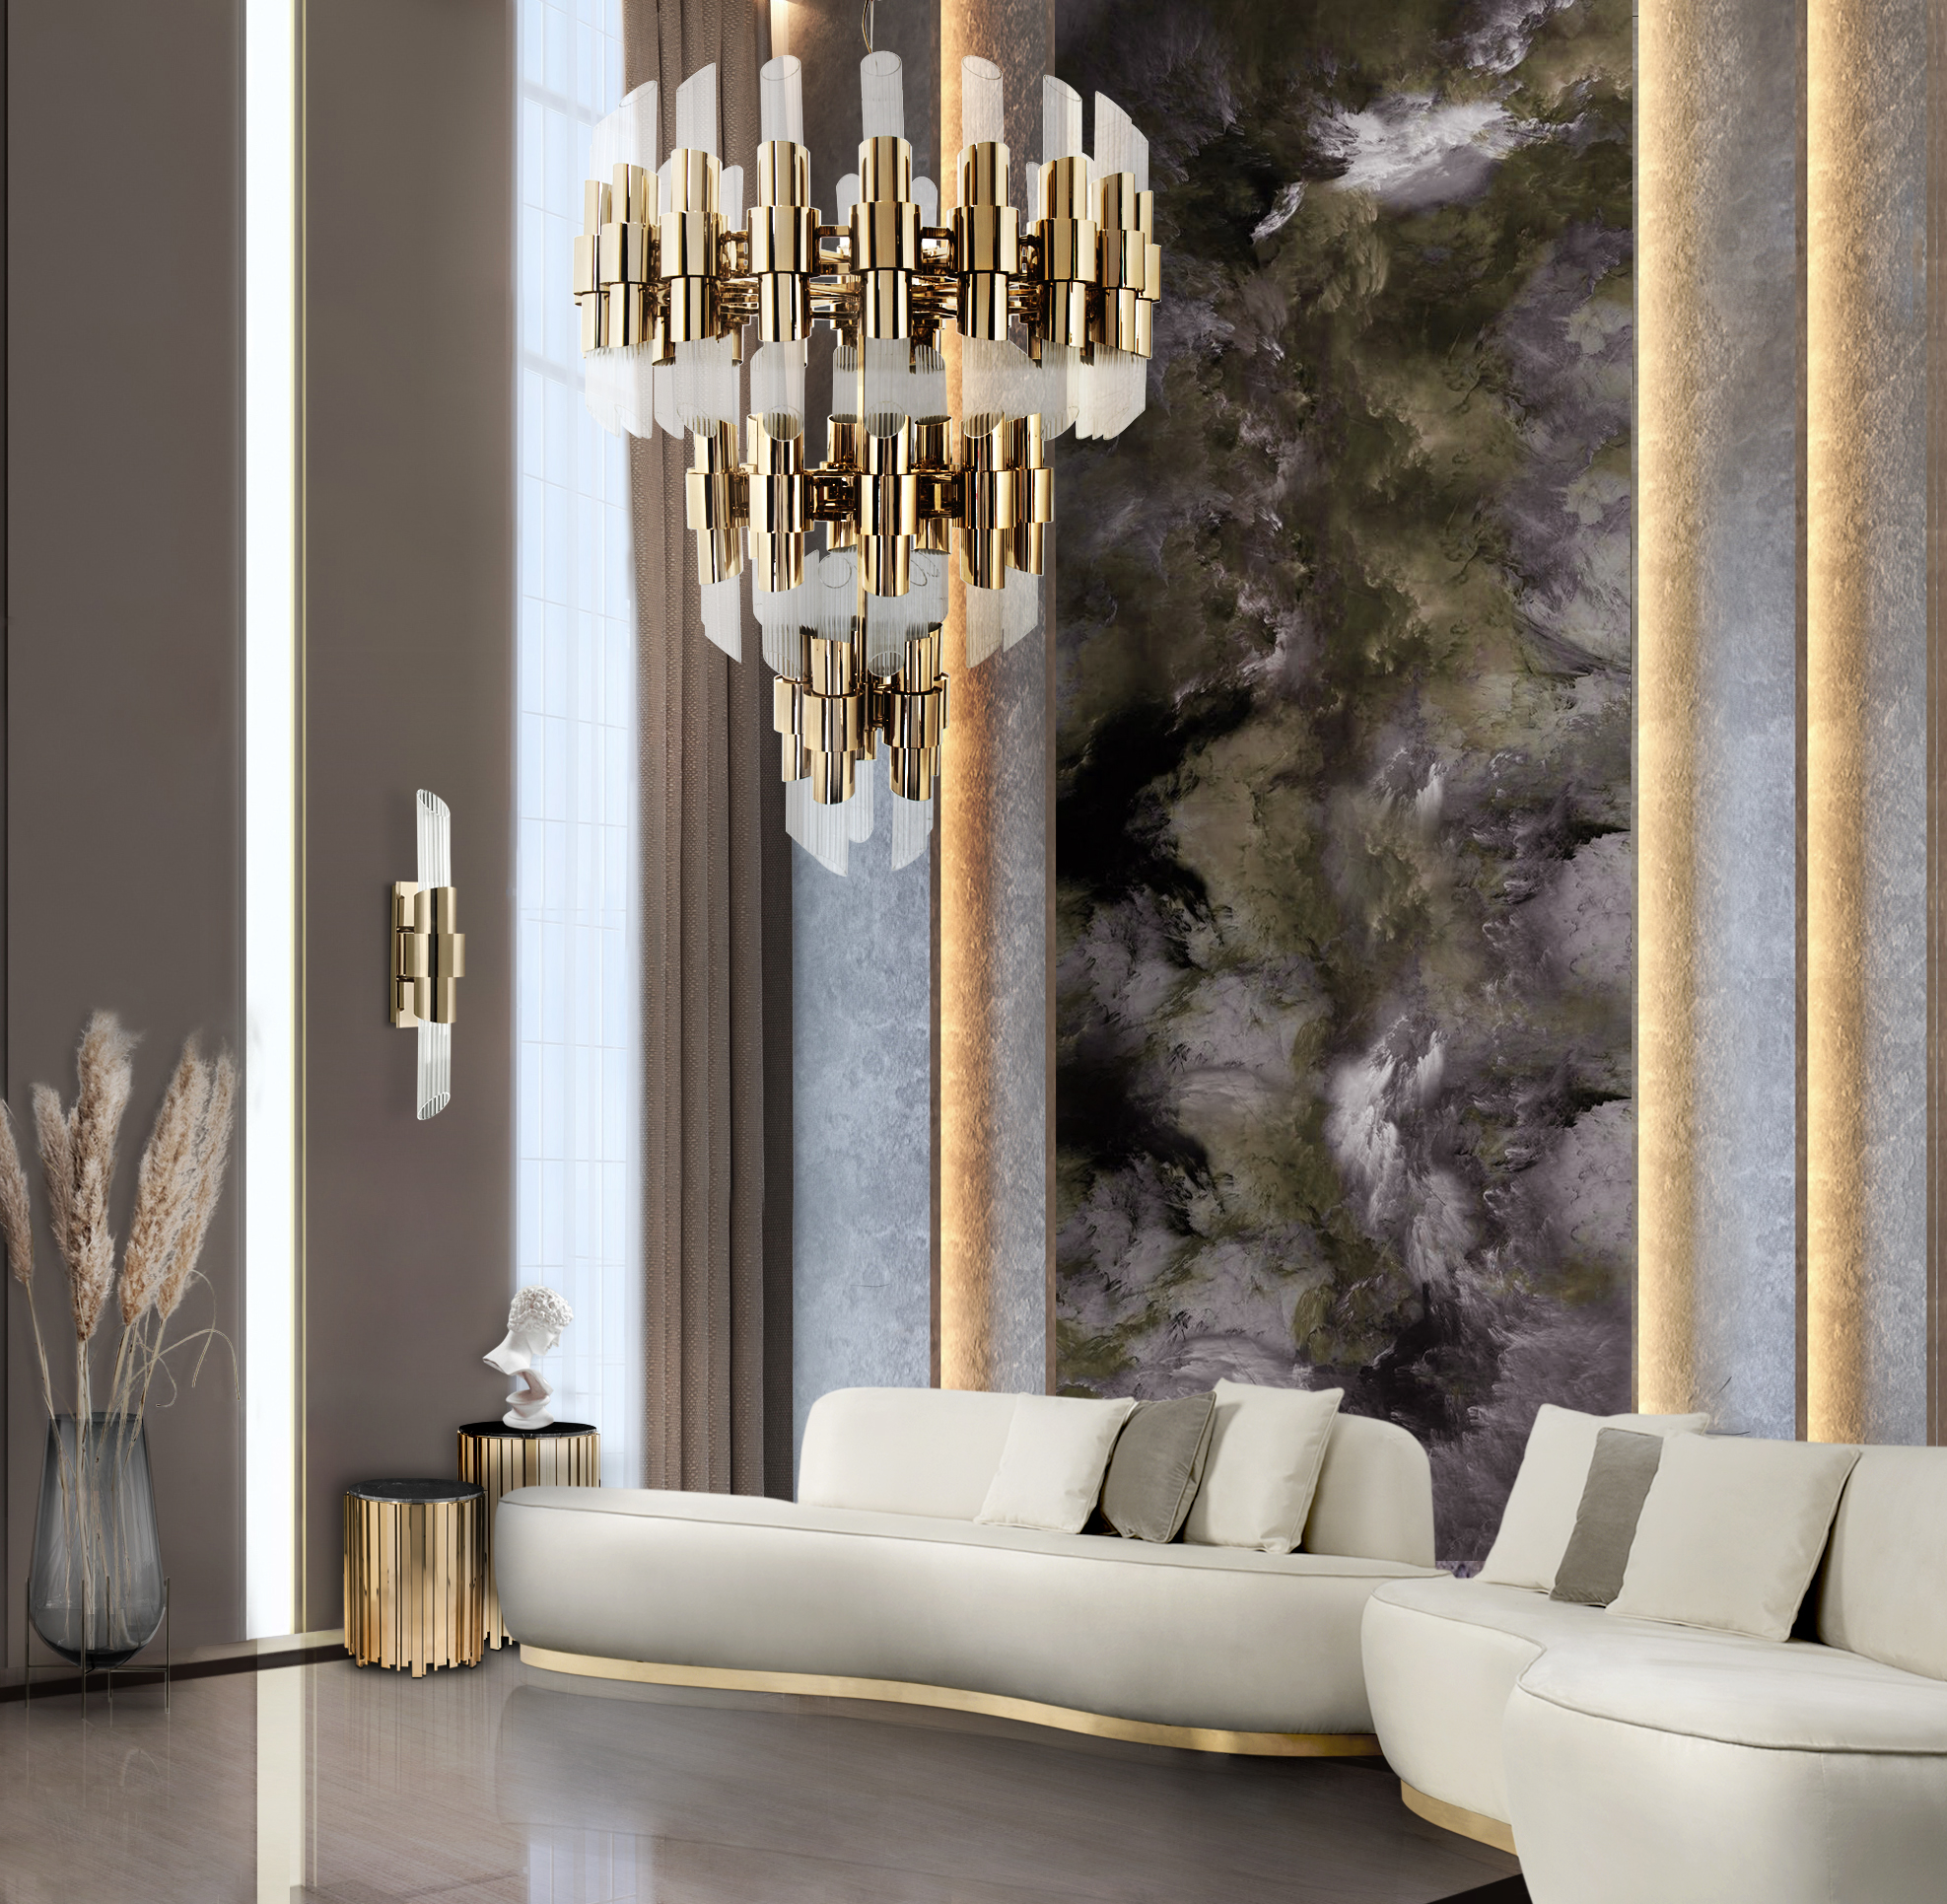 Product of the Week: Tycho Chandelier